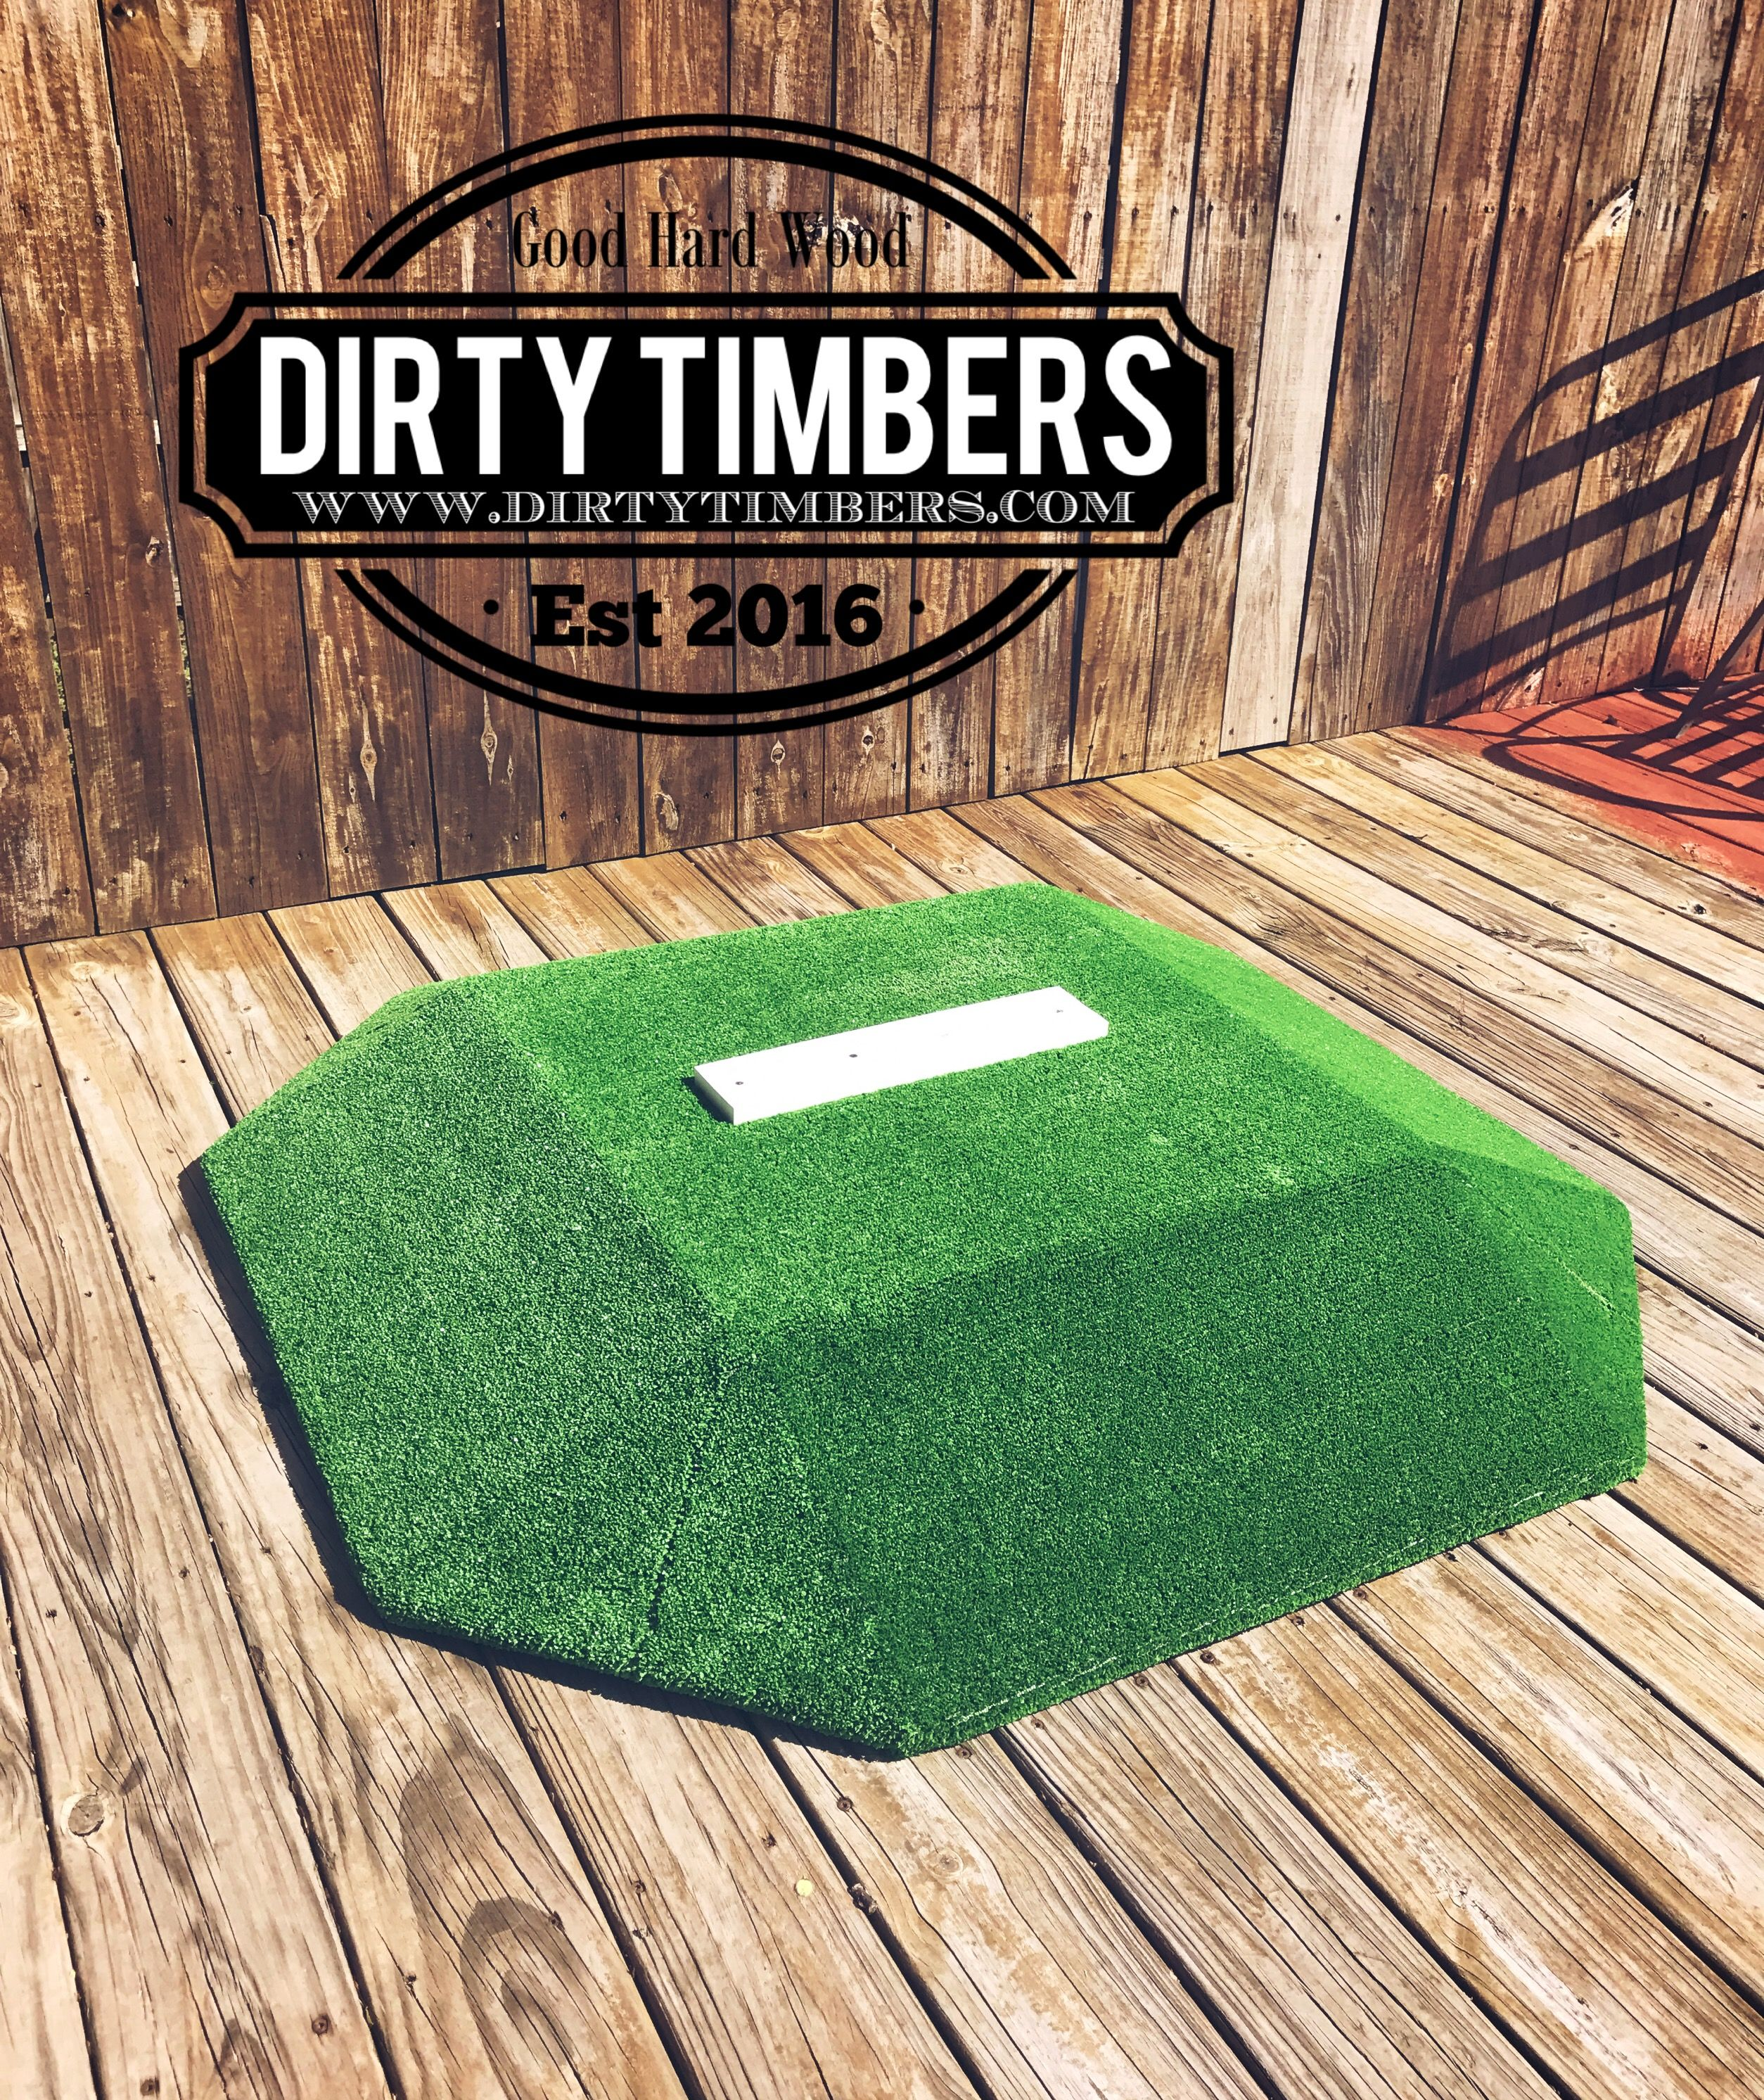 Portable Pitchers Mound TexasBowhunter munity Discussion